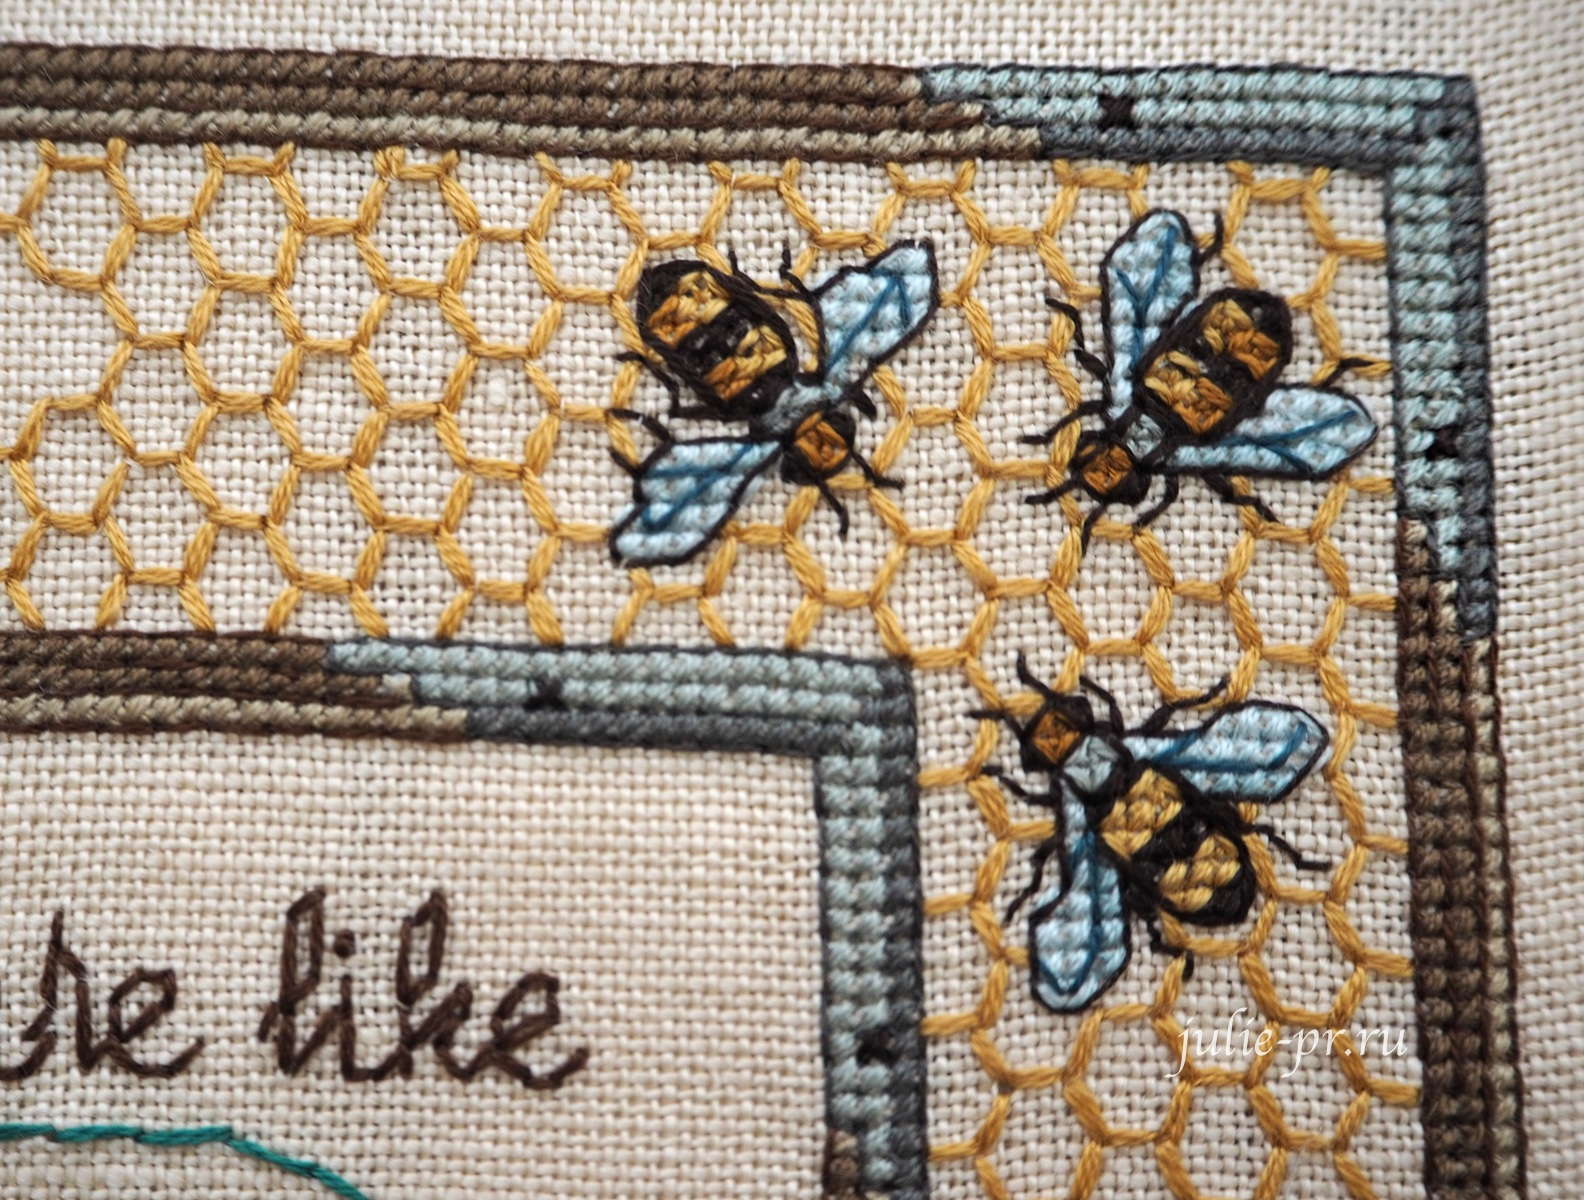 вышивка крестом, Gathering honey, Сбор мёда, журнал Cross Stitch and Country Crafts, Sandy Orton